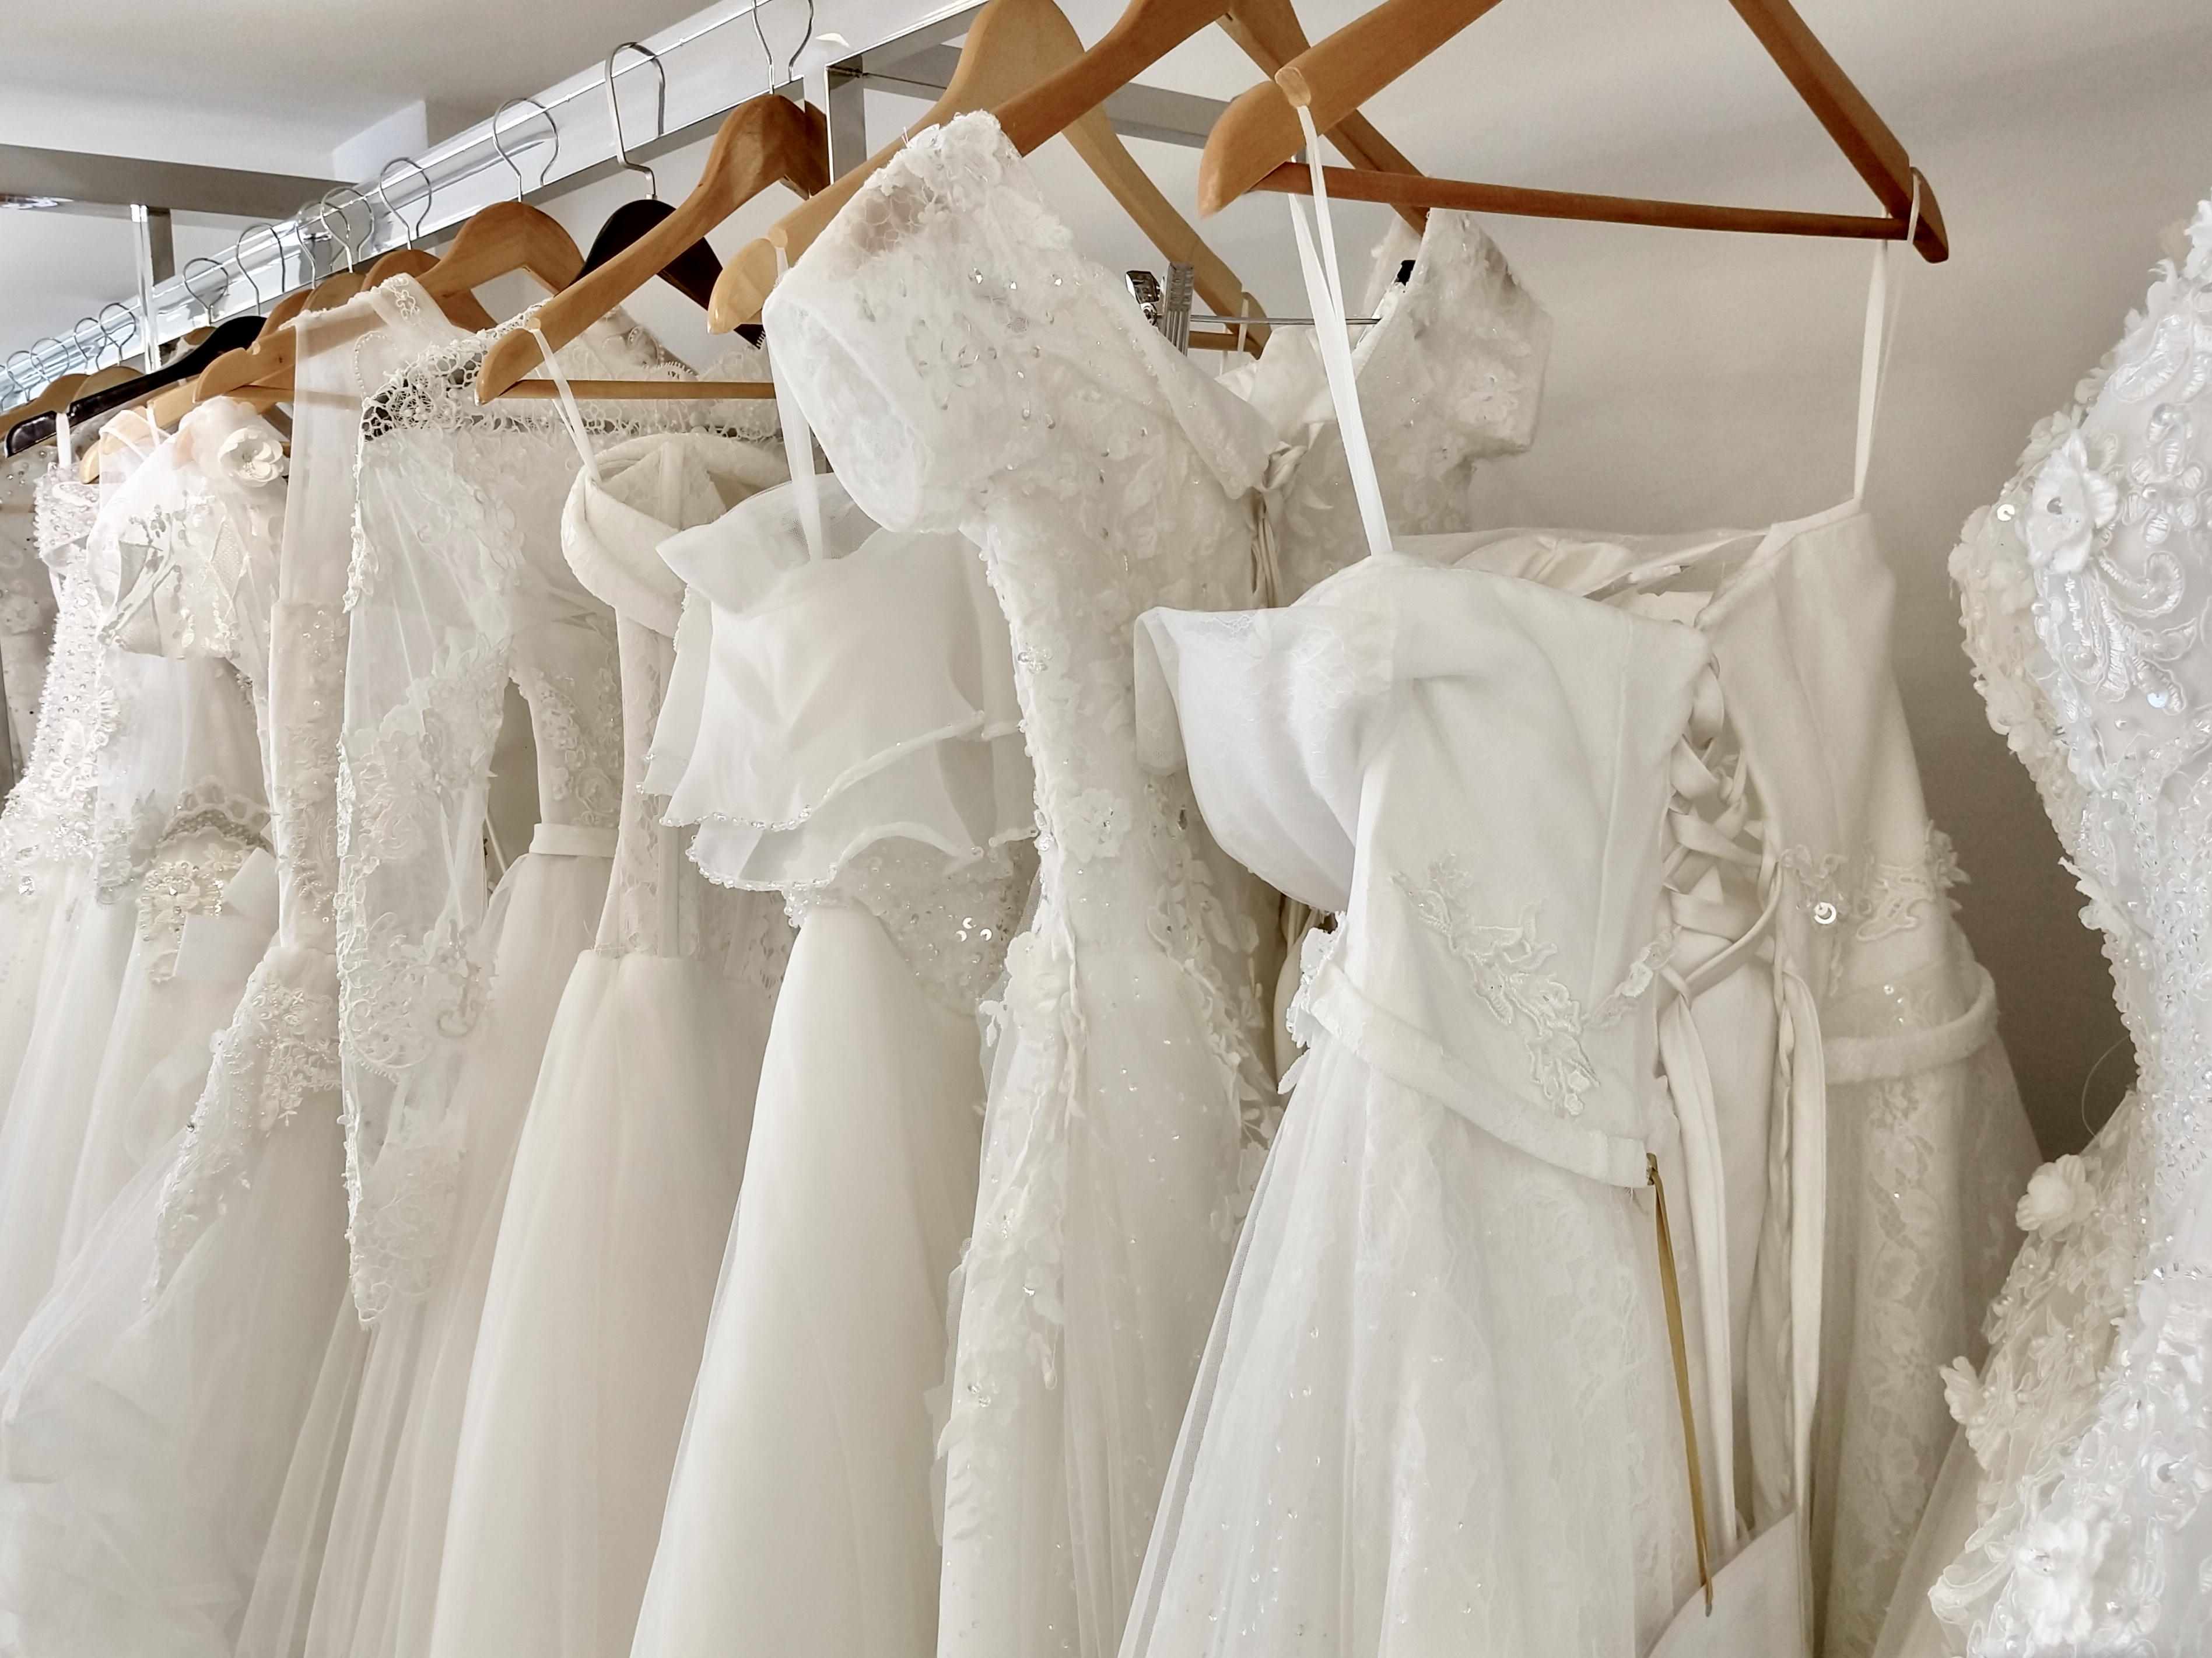 Bridal Gowns Could Be In Short Supply For Wedding Season Because